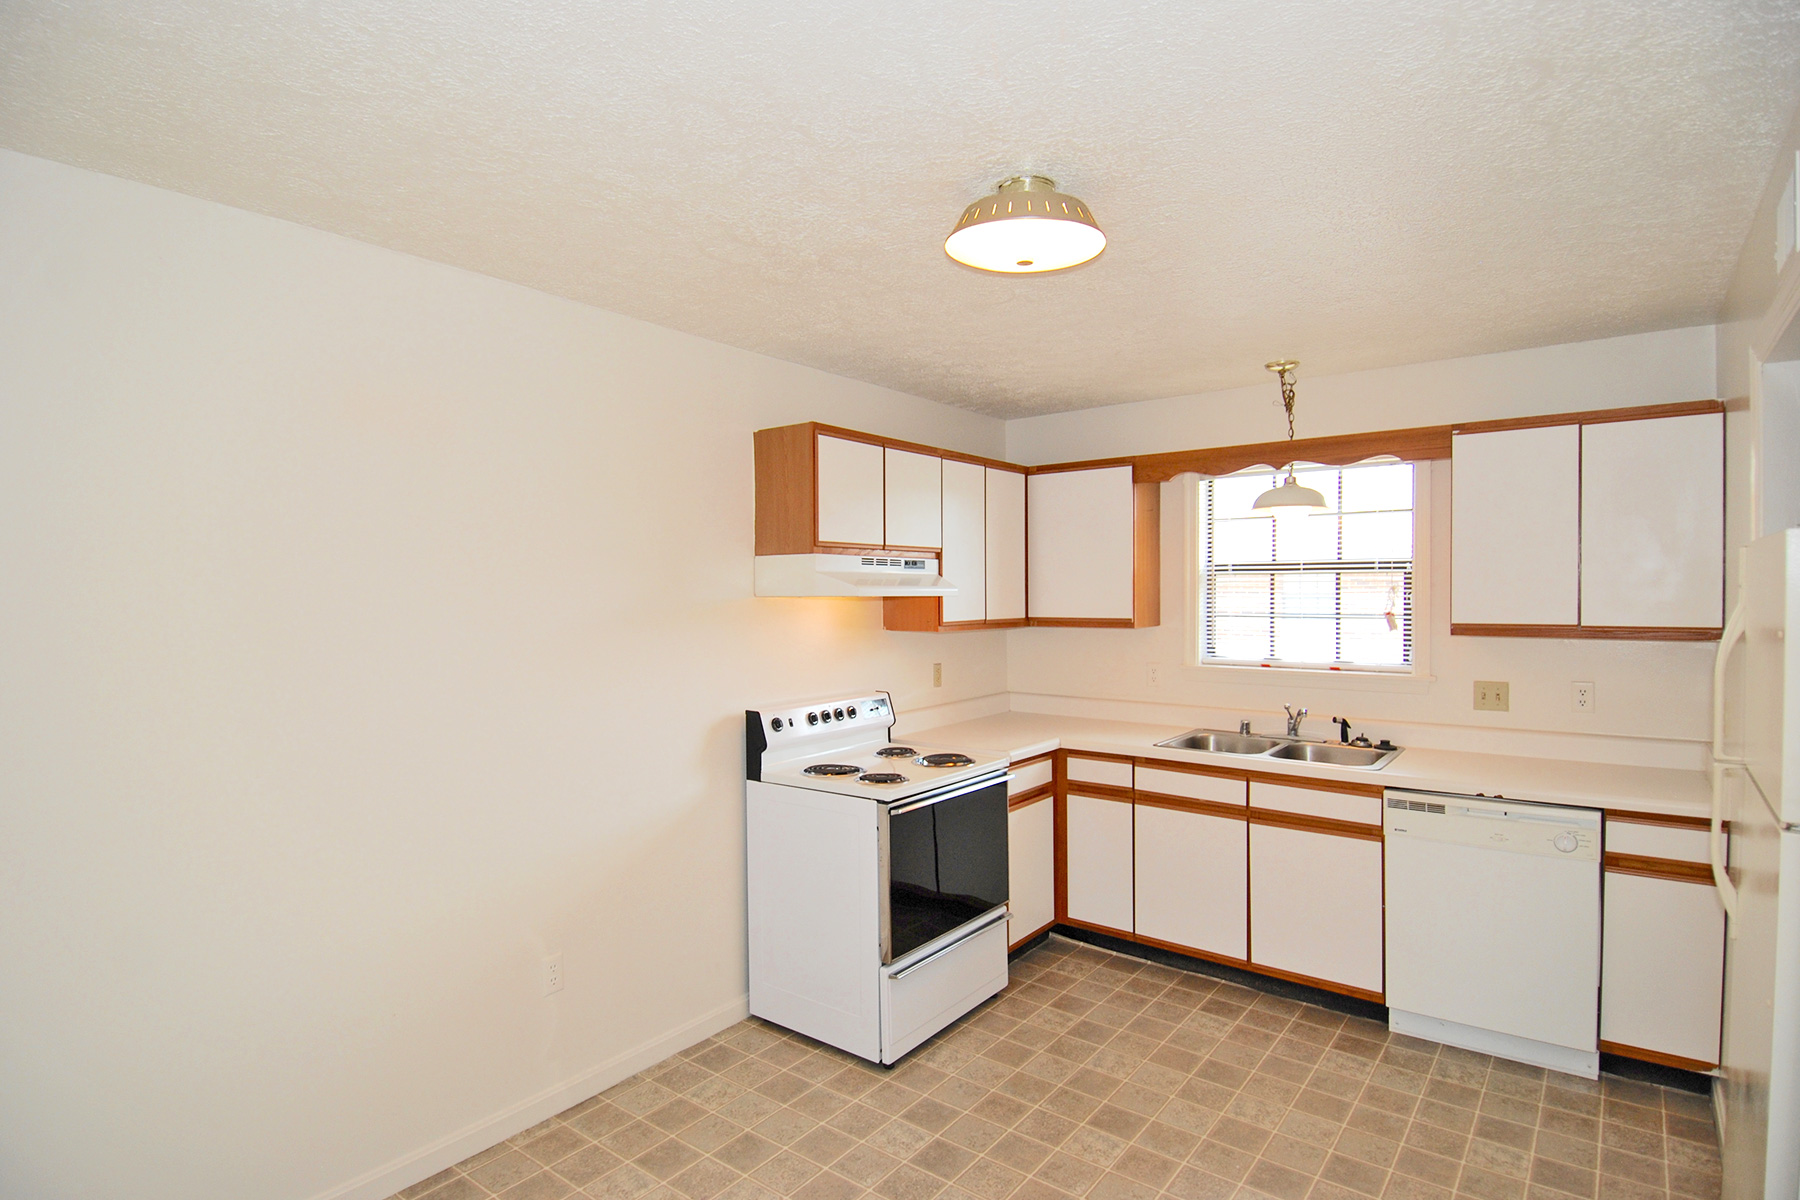 Shawnee terrace apartments aikens group for Terrace kitchen